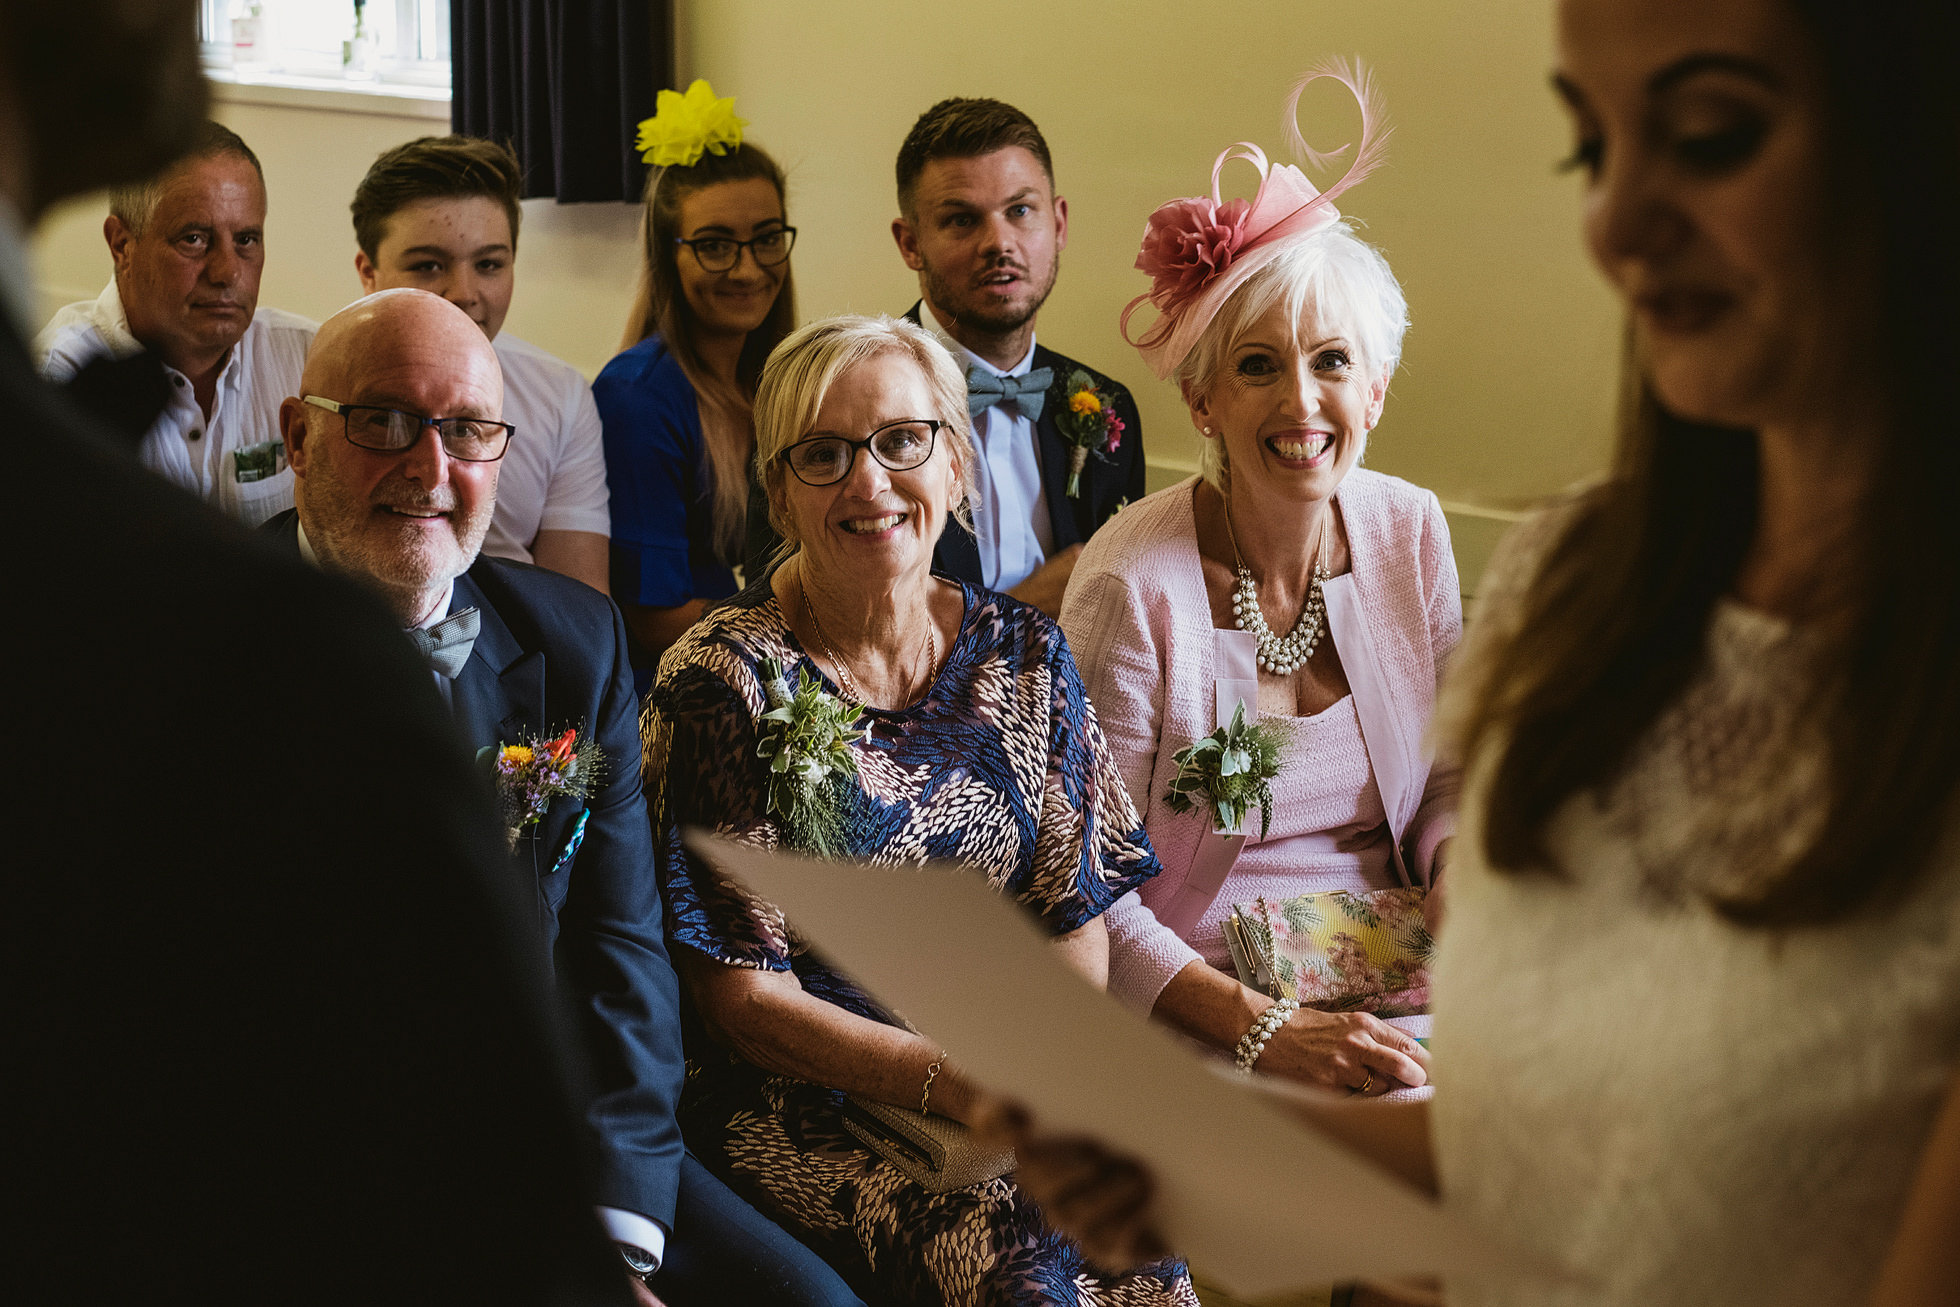 chappel village hall wedding photographer